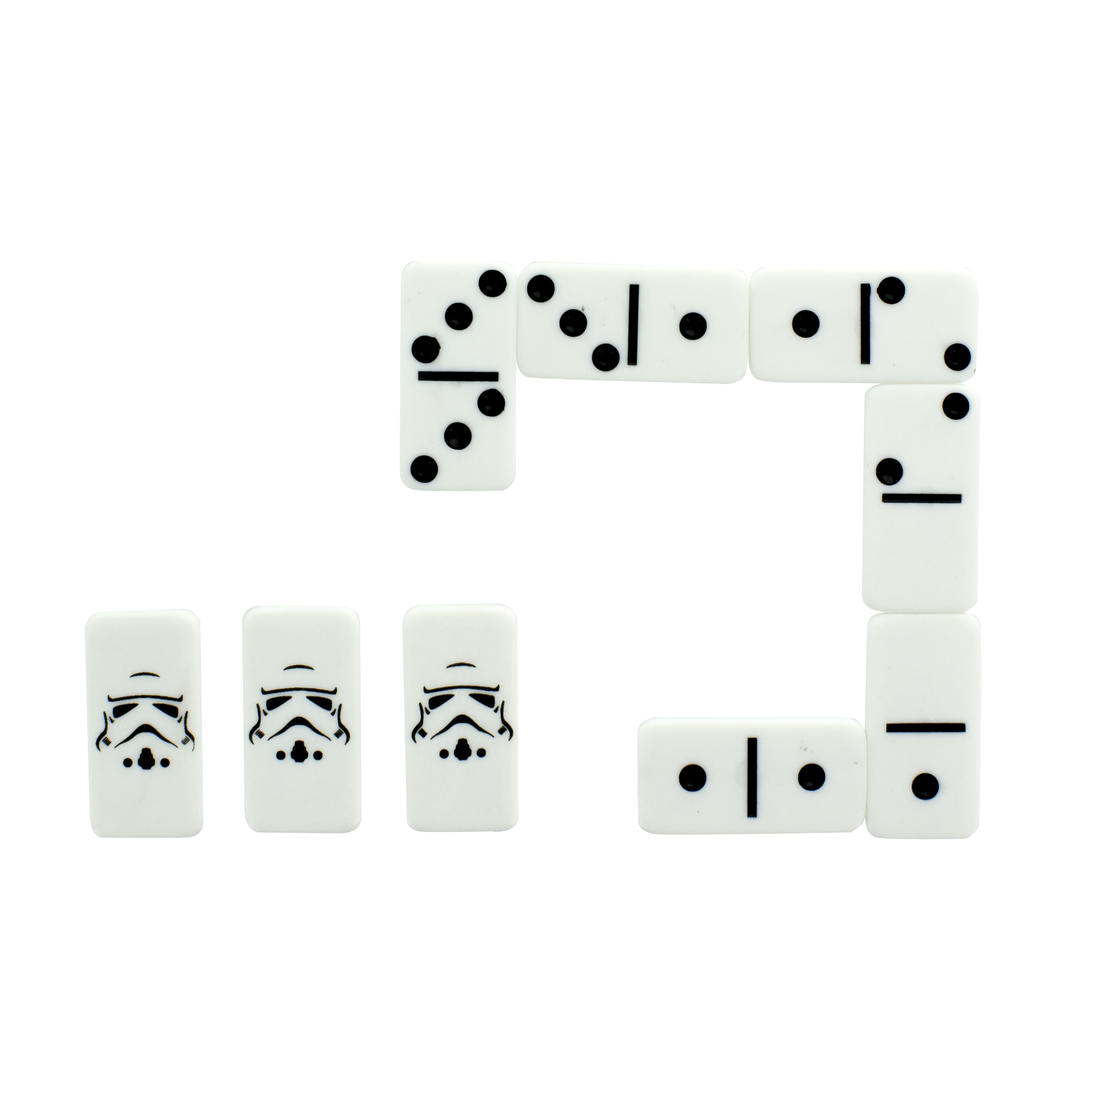 Star Wars Galactic Empire Dominoes pour Jeu De Domino Gratuit Contre L Ordinateur